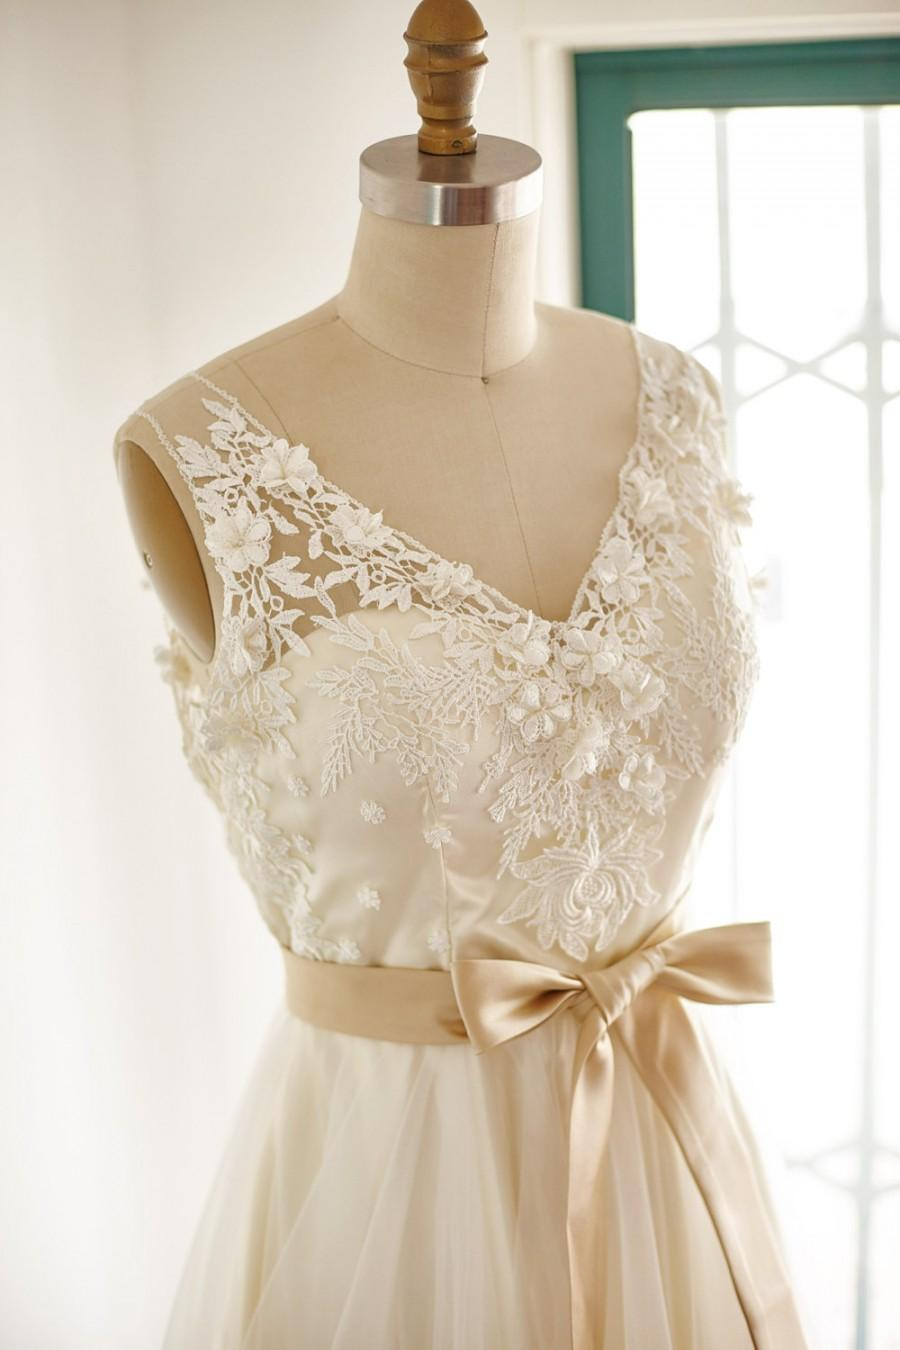 Mariage - Lace Tulle Wedding Dress  Bridal Gown with Champagne Lining